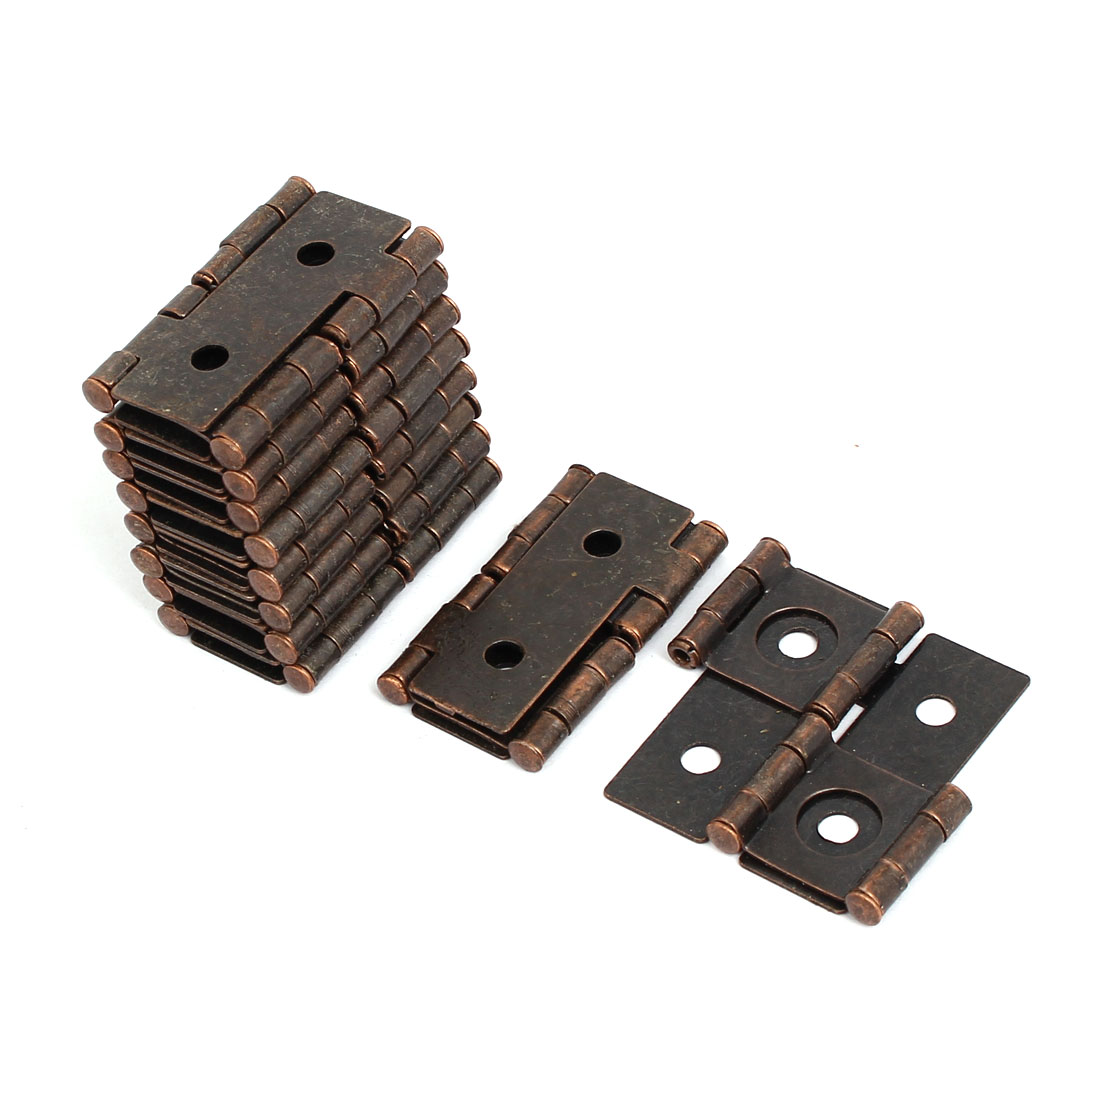 47mmx45mmx5mm Antique Style Double Acting Folding Screen Hinge Copper Tone 10pcs